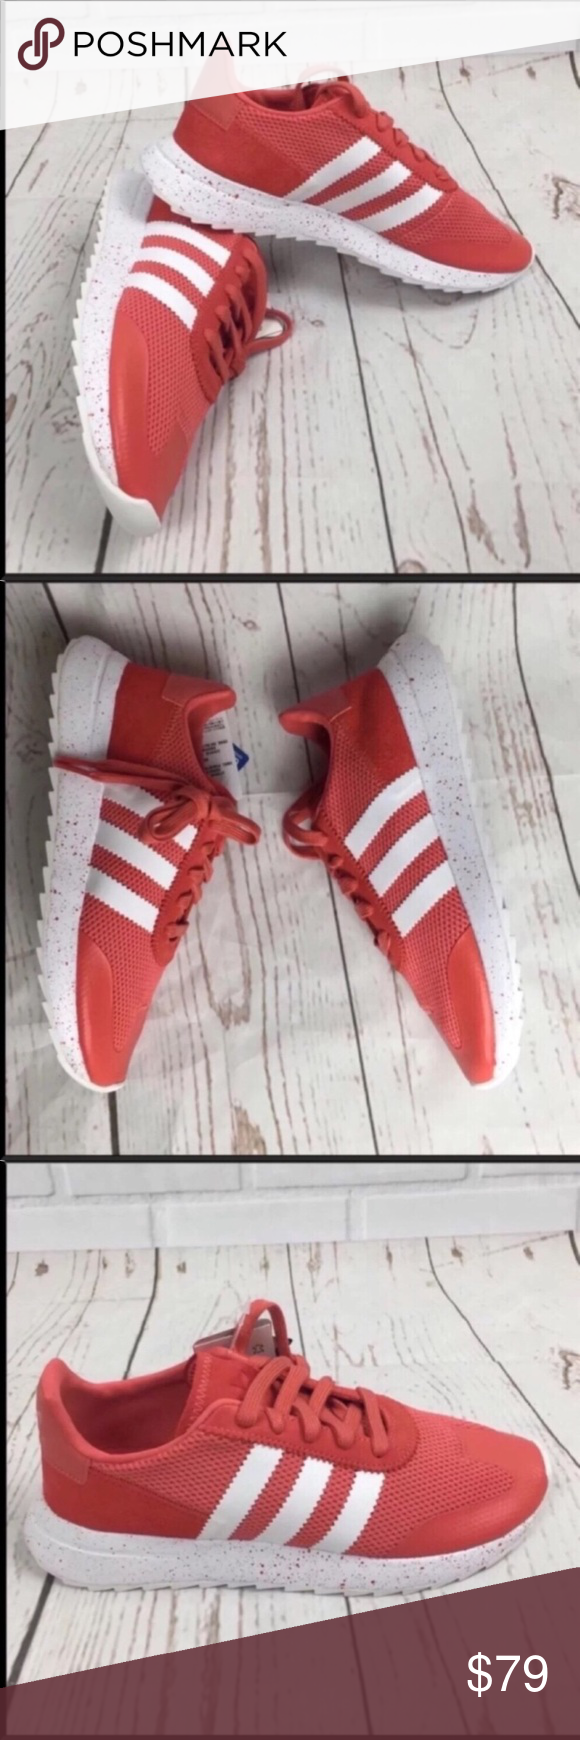 c42c563826faea Adidas Flashback Women s 8 NEW Trace Scarlet Cloud White Jersey lining Mesh  upper with aquatech print overlay at the toe and suede details adidas Shoes  ...